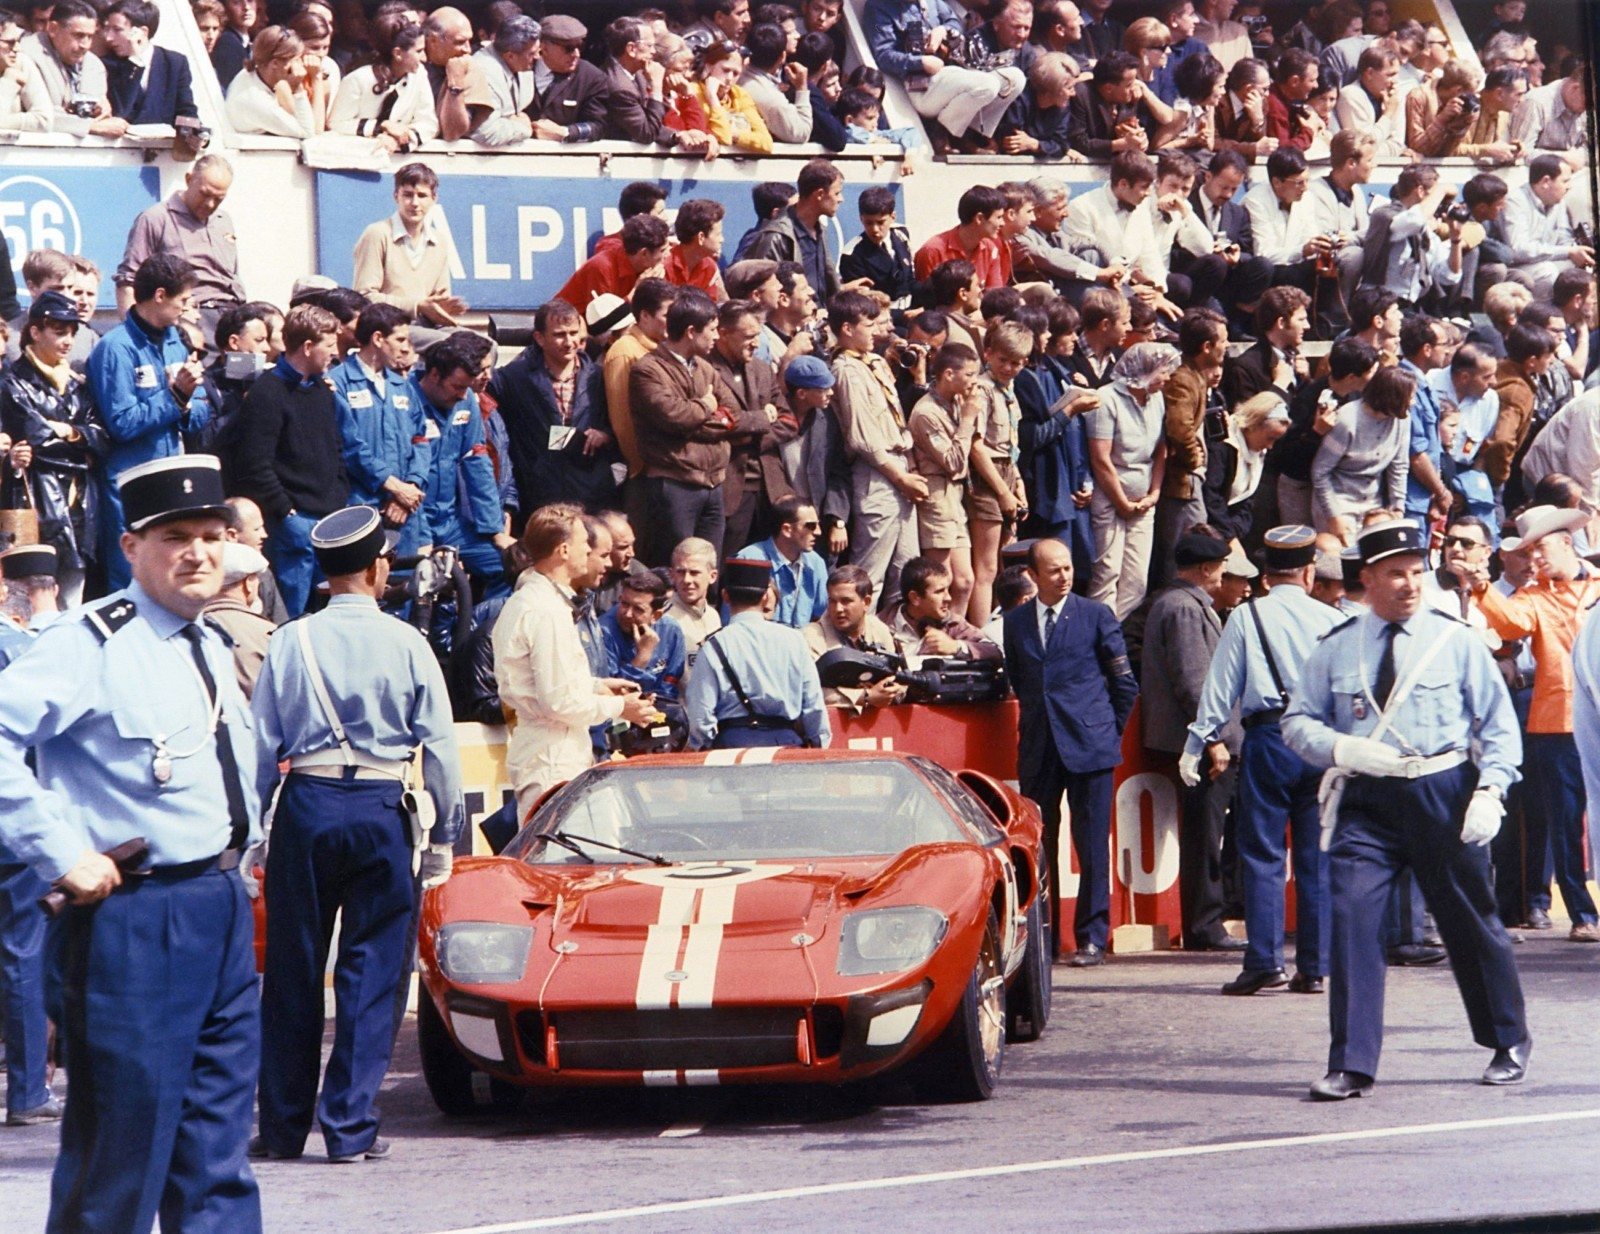 FordGT_Heritage_1966_02 copy